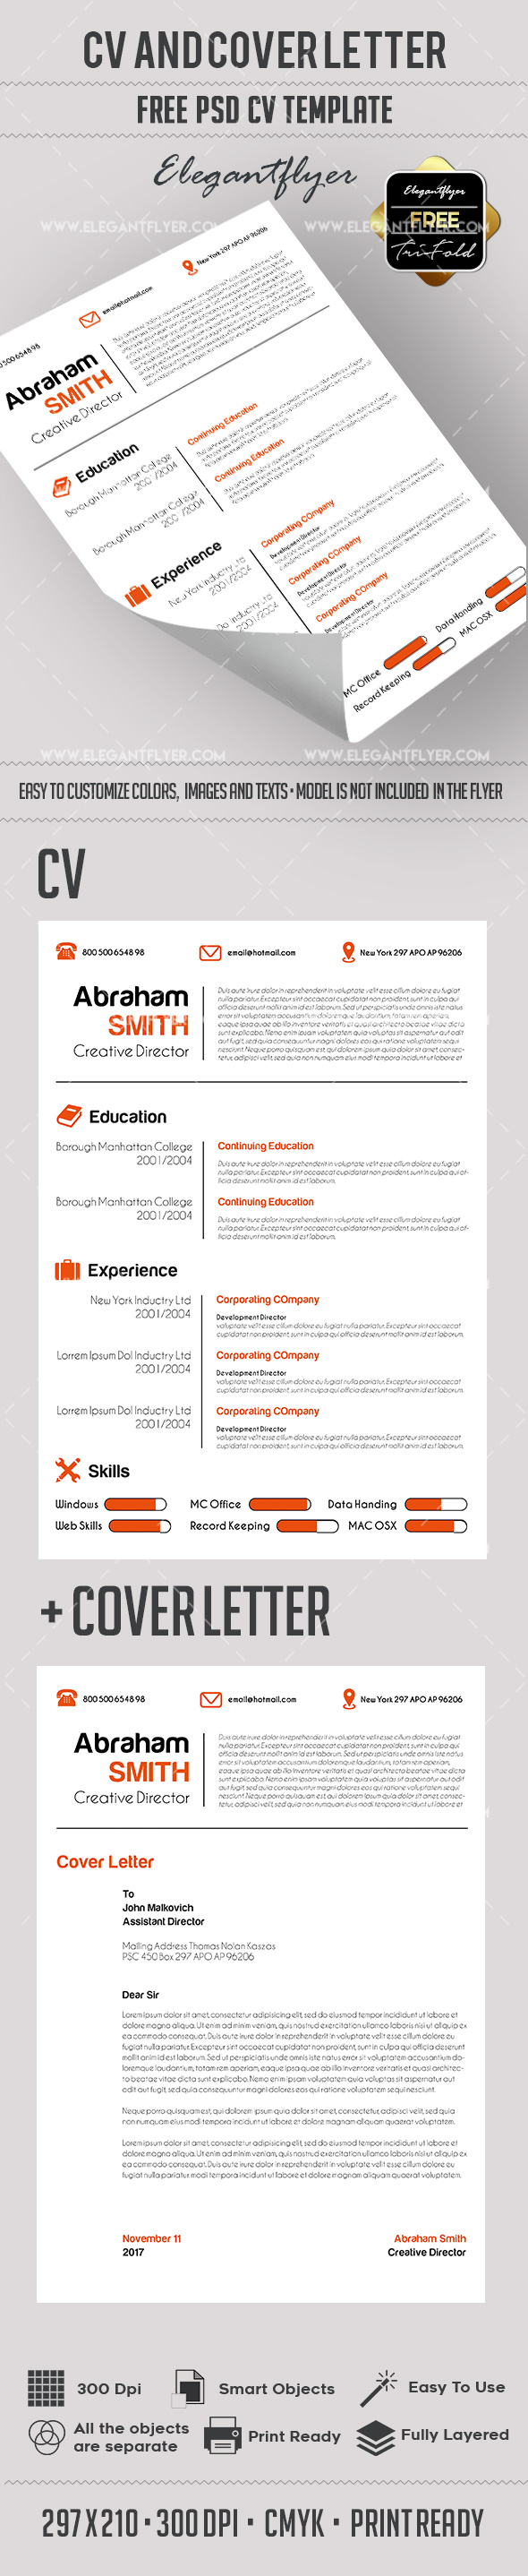 Downloadable Free Resume Template + CV and Cover Letter